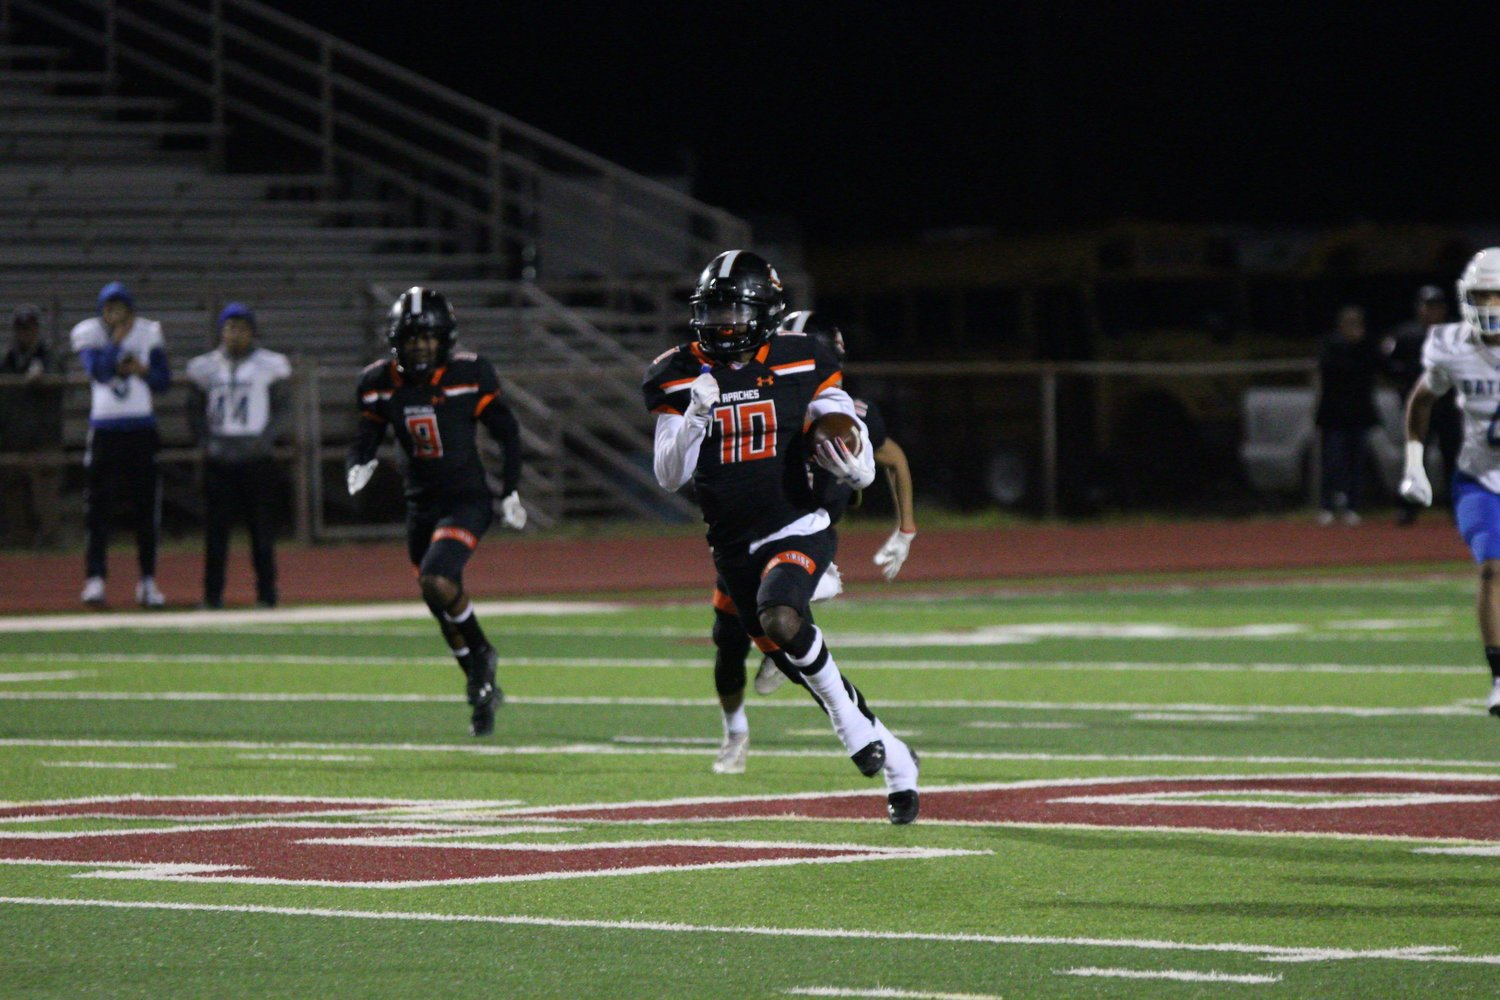 Arbreyon Dora returns an interception in Gonzales' 48-27 victory over Grulla. Dora was everywhere Friday night, scoring on offense, defense and on a two-point conversion.